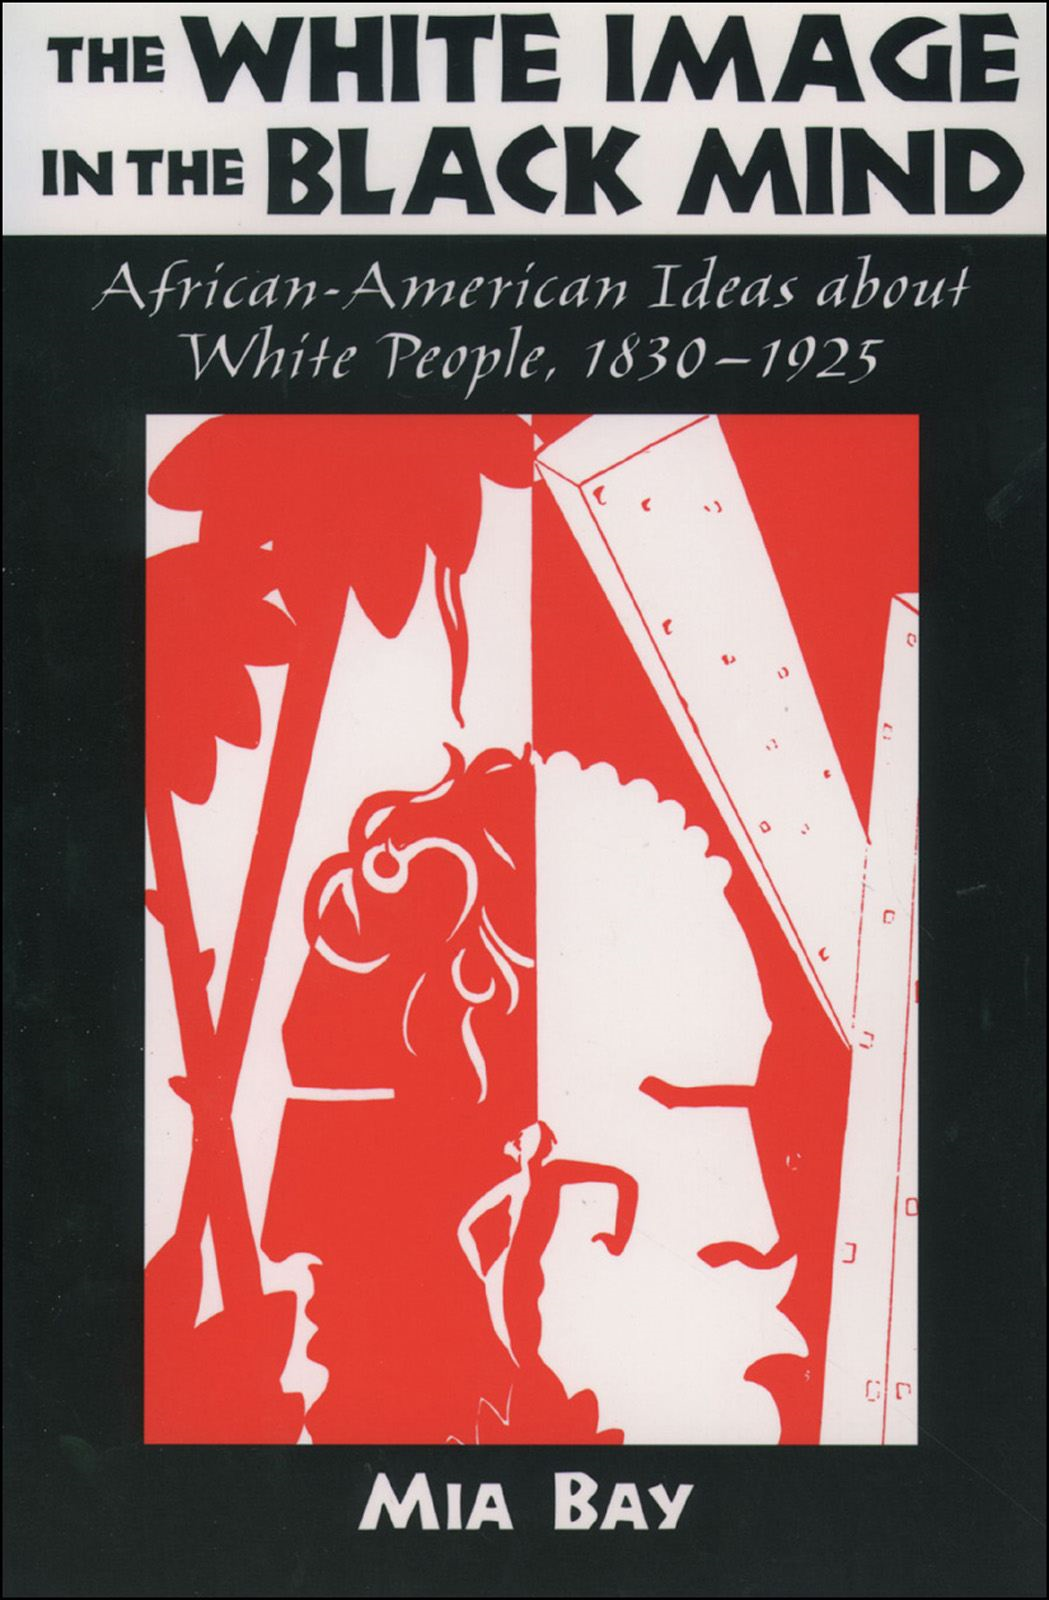 The White Image in the Black Mind : African-American Ideas about White People 1830-1925 By: Mia Bay